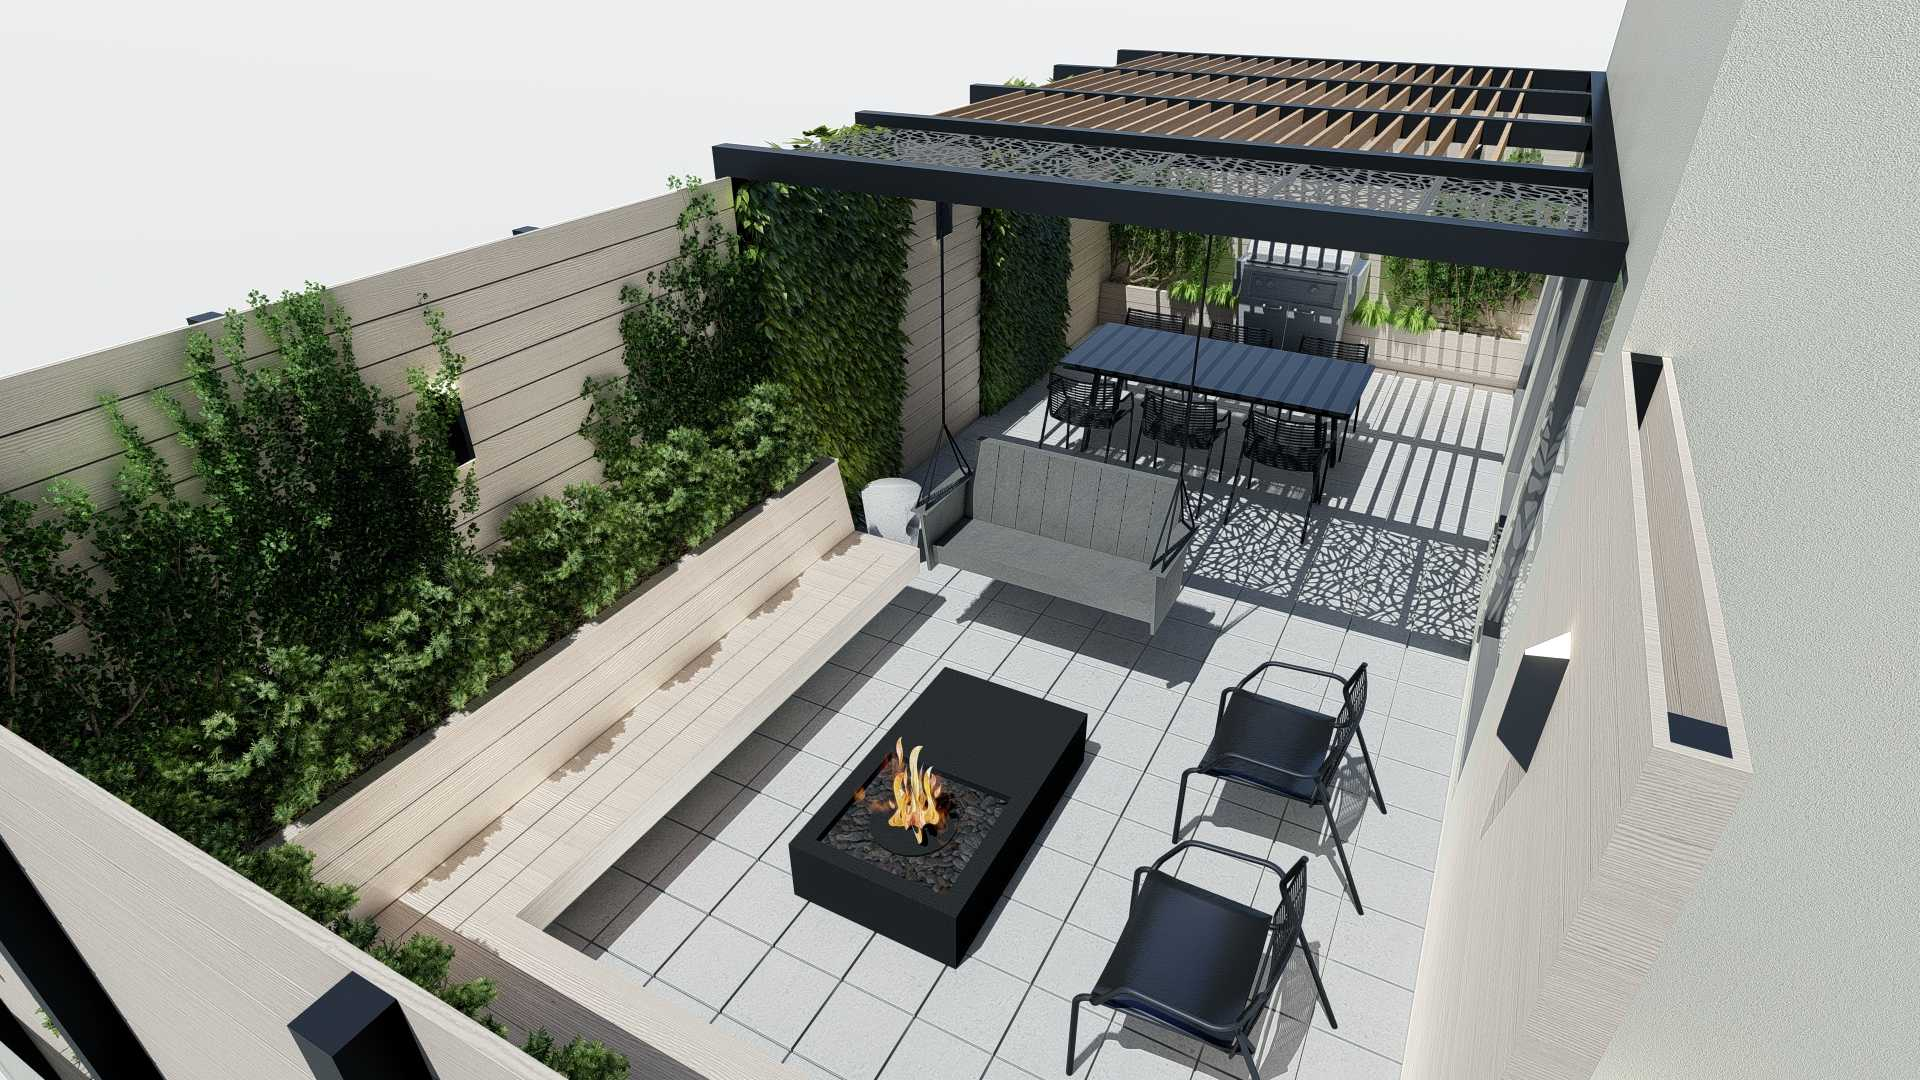 Top view, adult swing, pergola and dining area, day shot